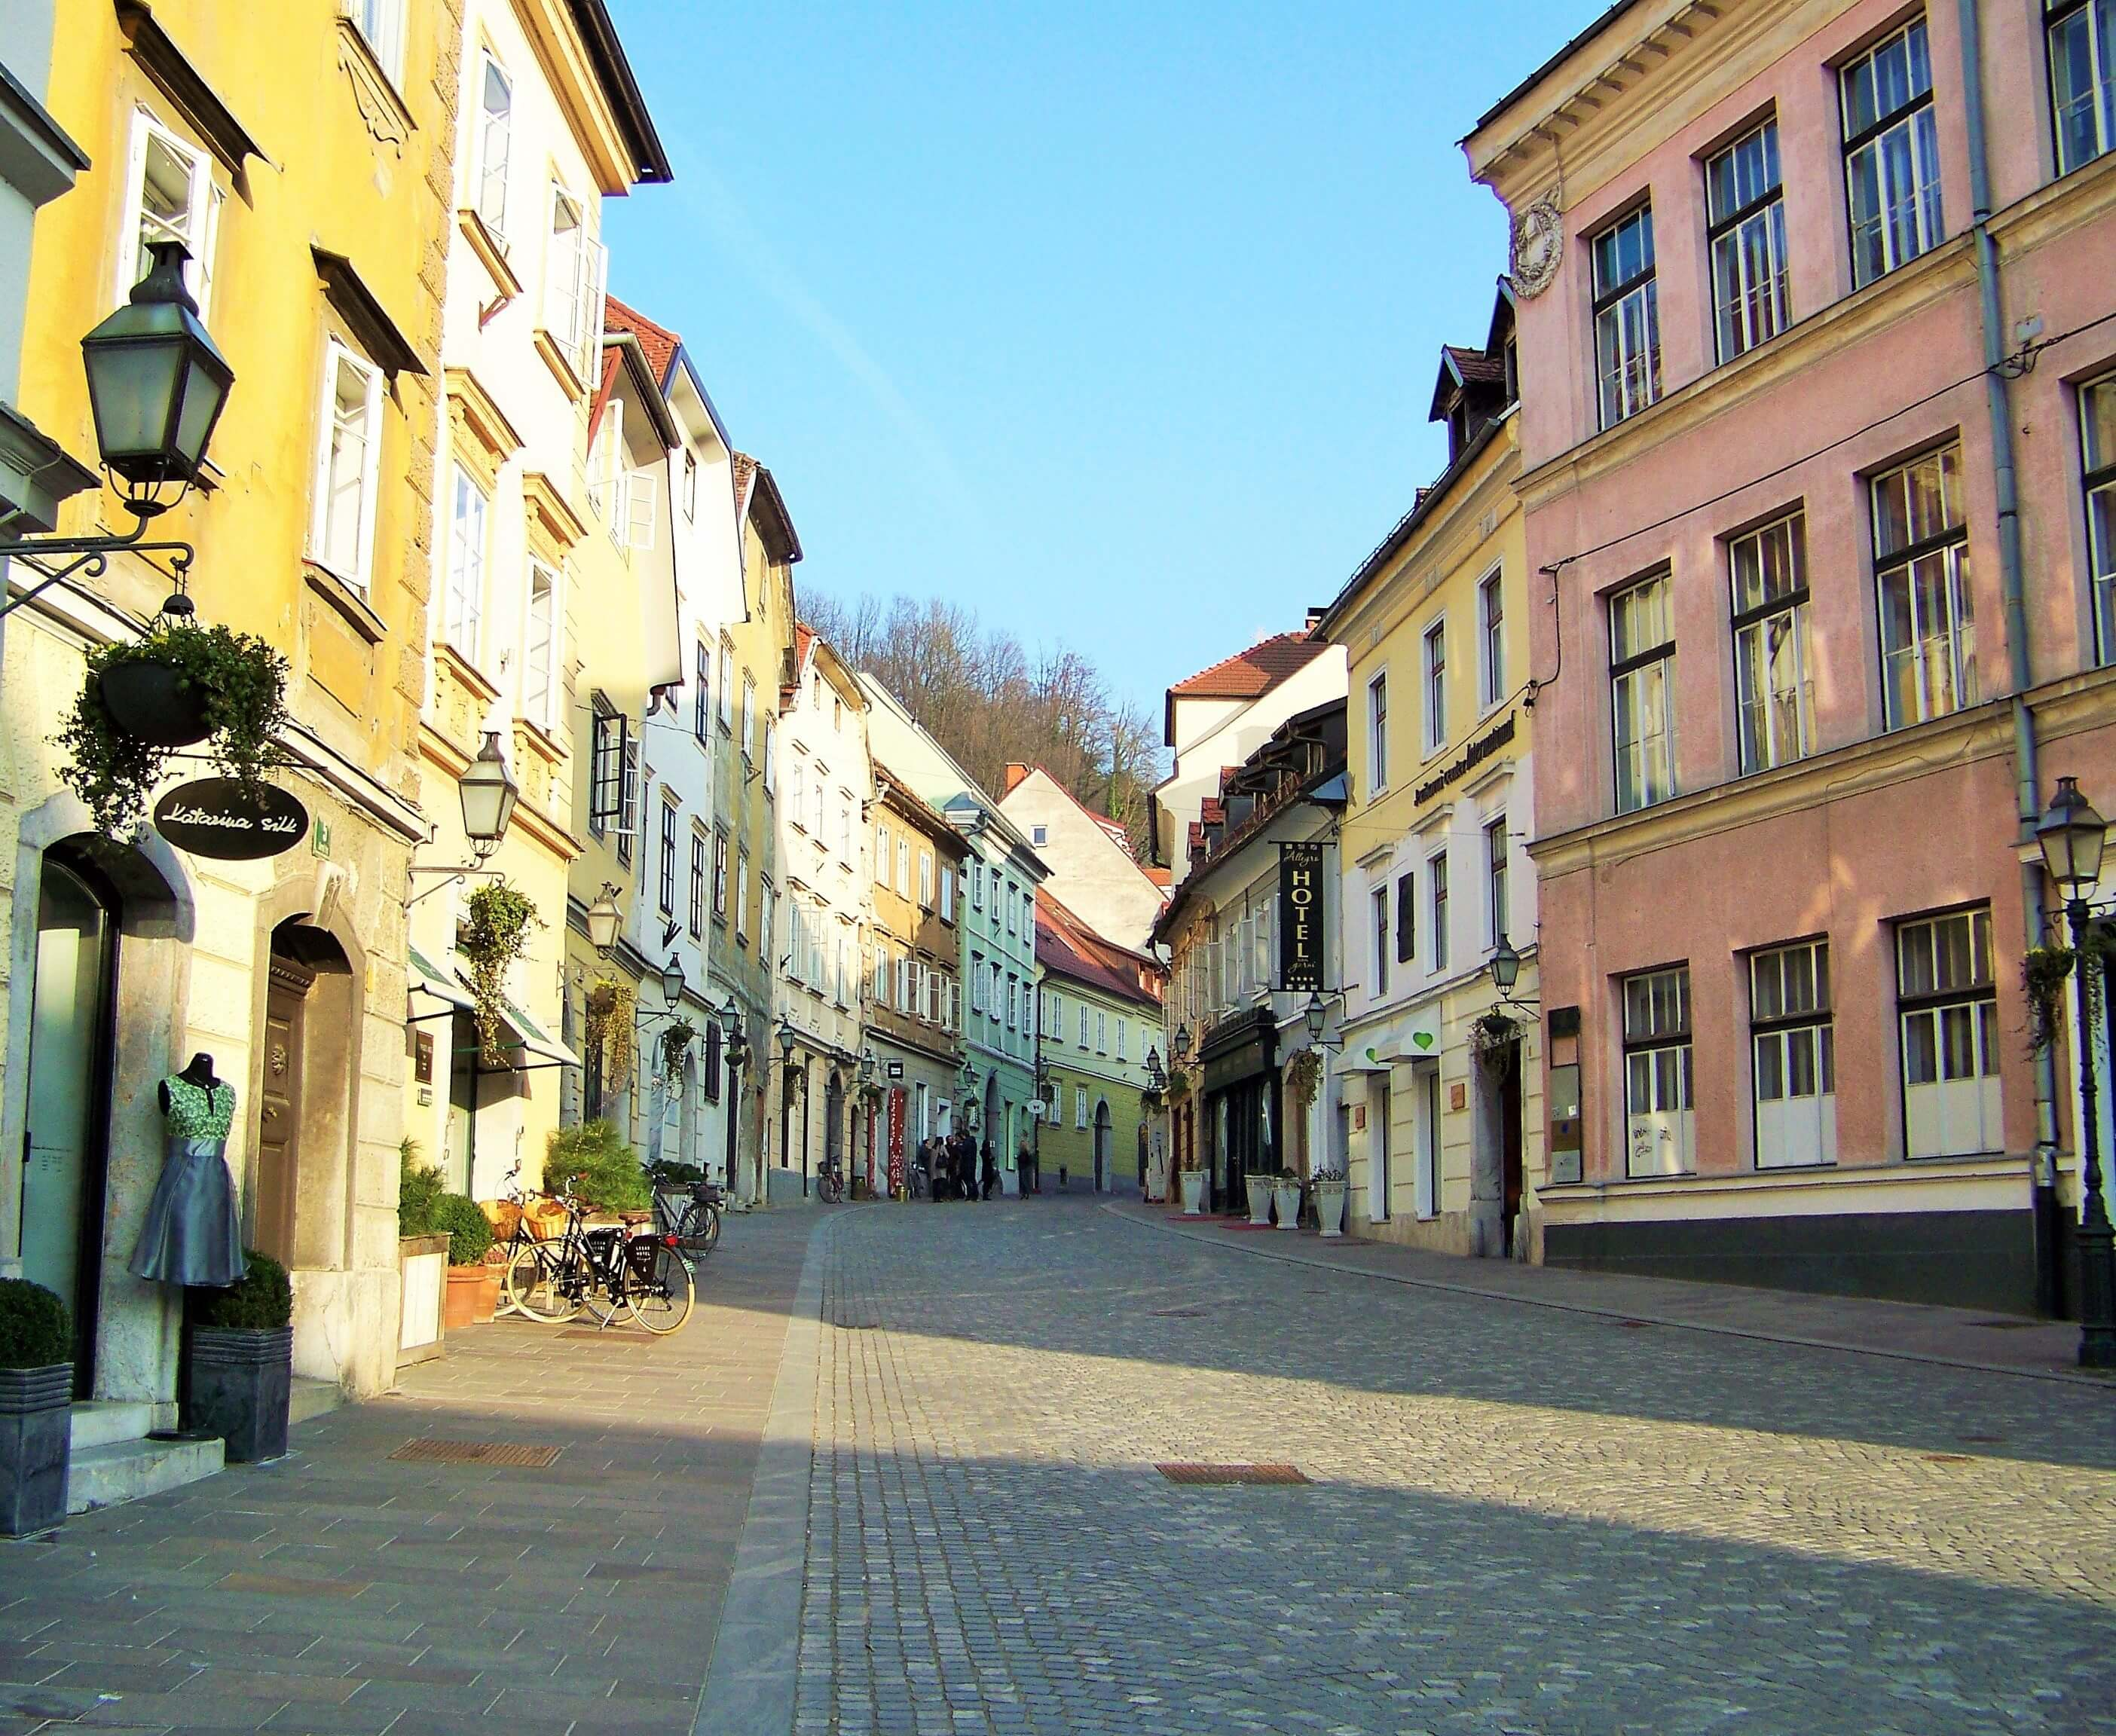 Colorful street in a Slovenian town. Orkneyology.com